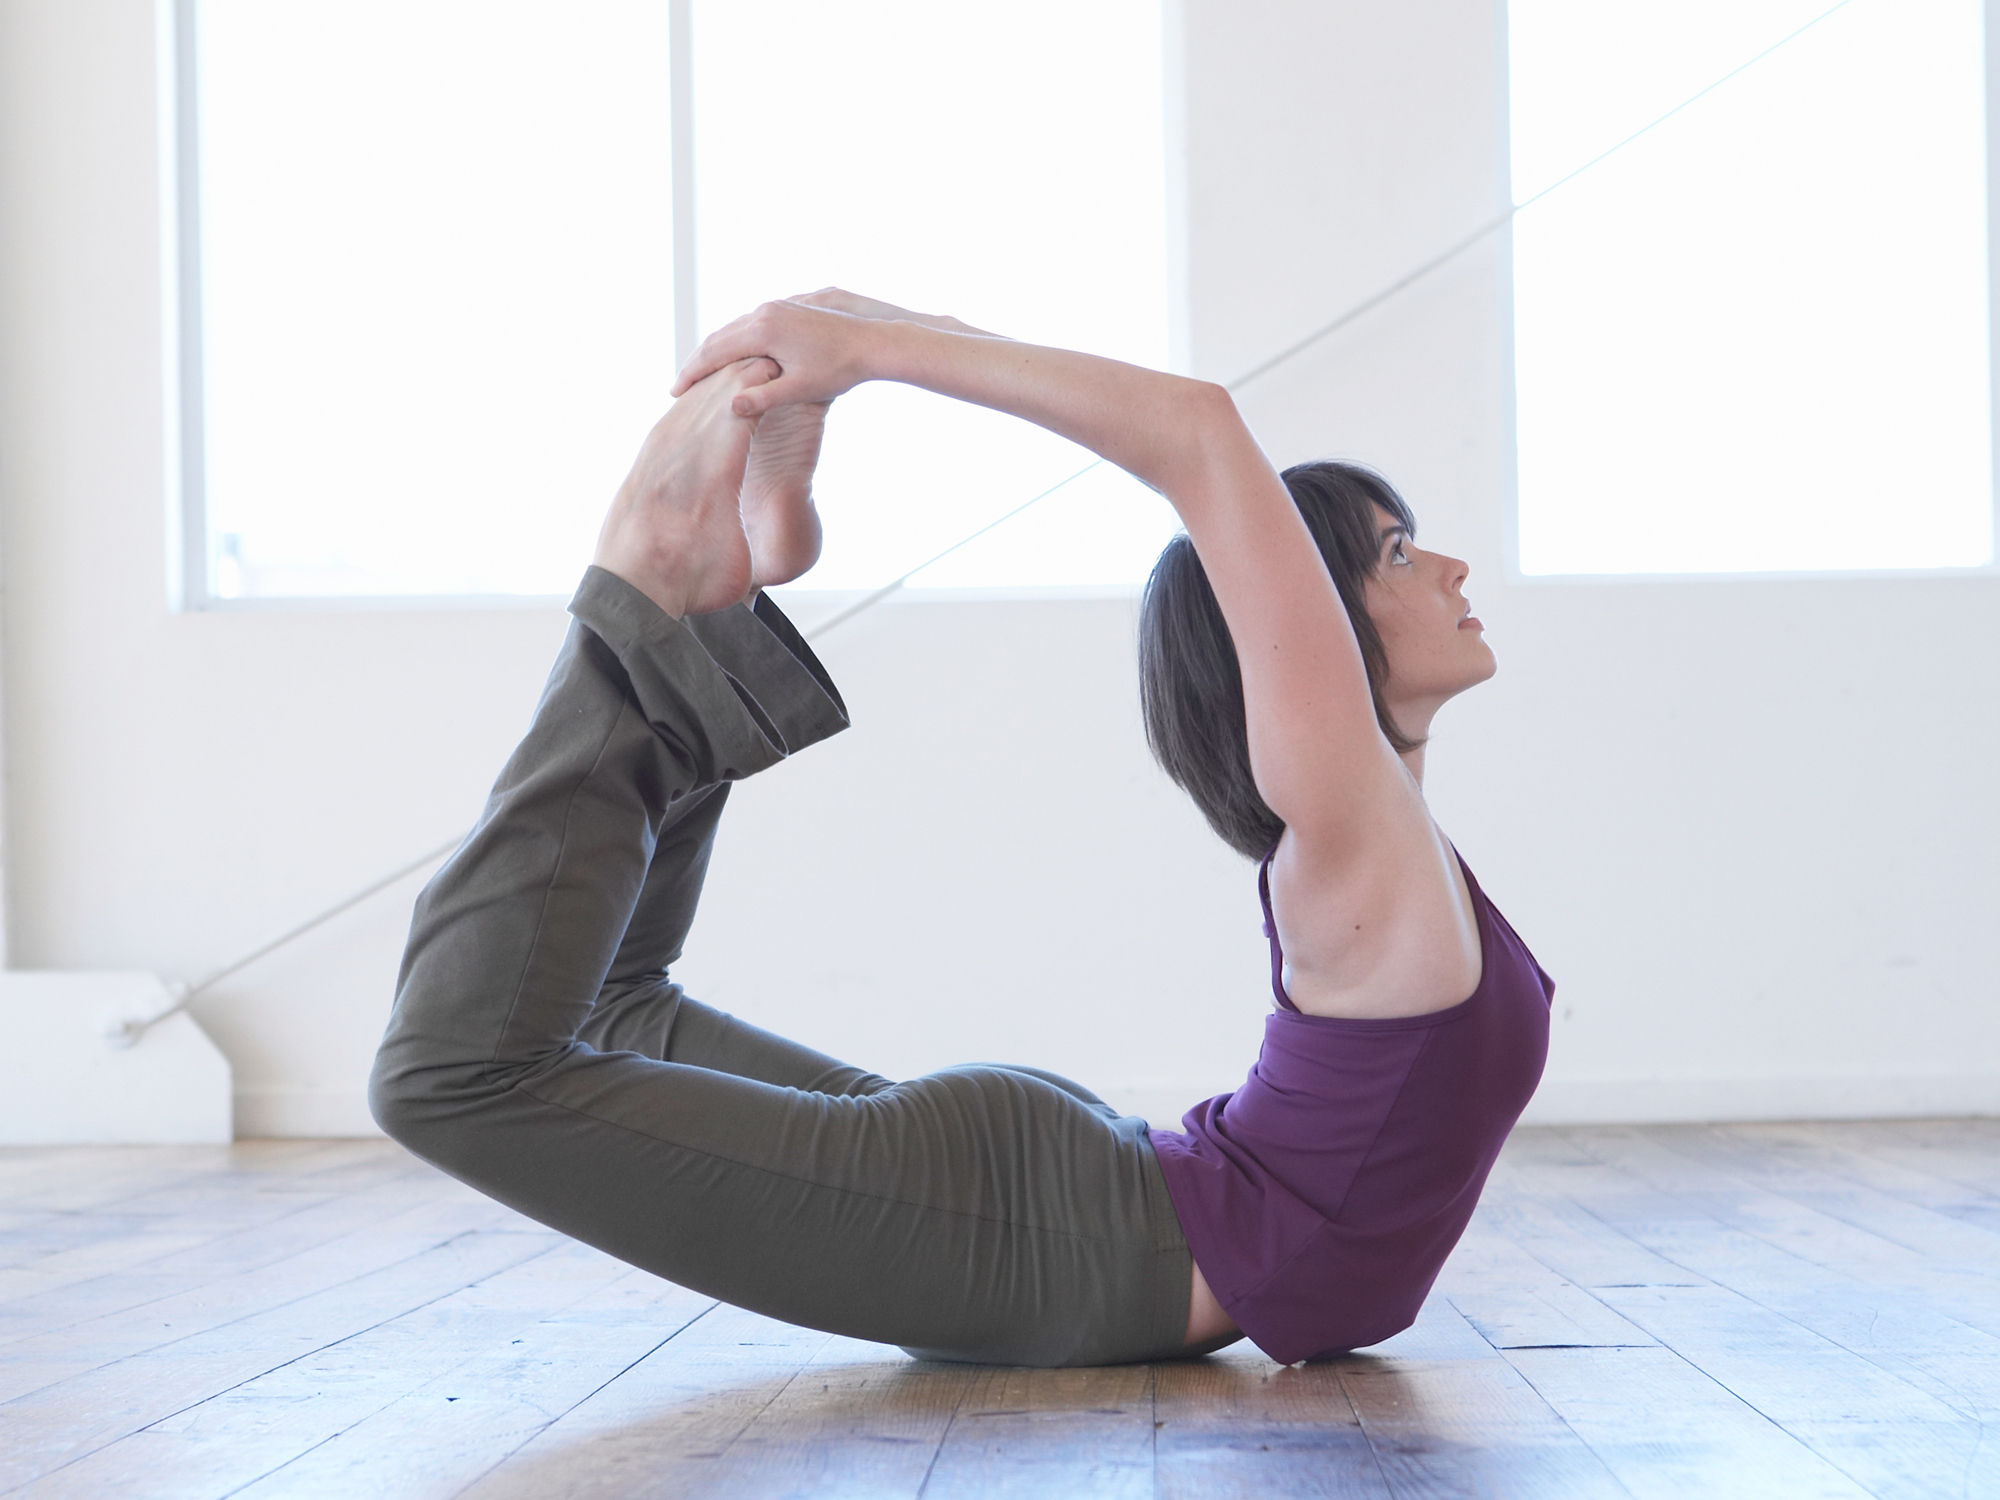 Bow pose helps you bow out of pain - Easy Health Options®